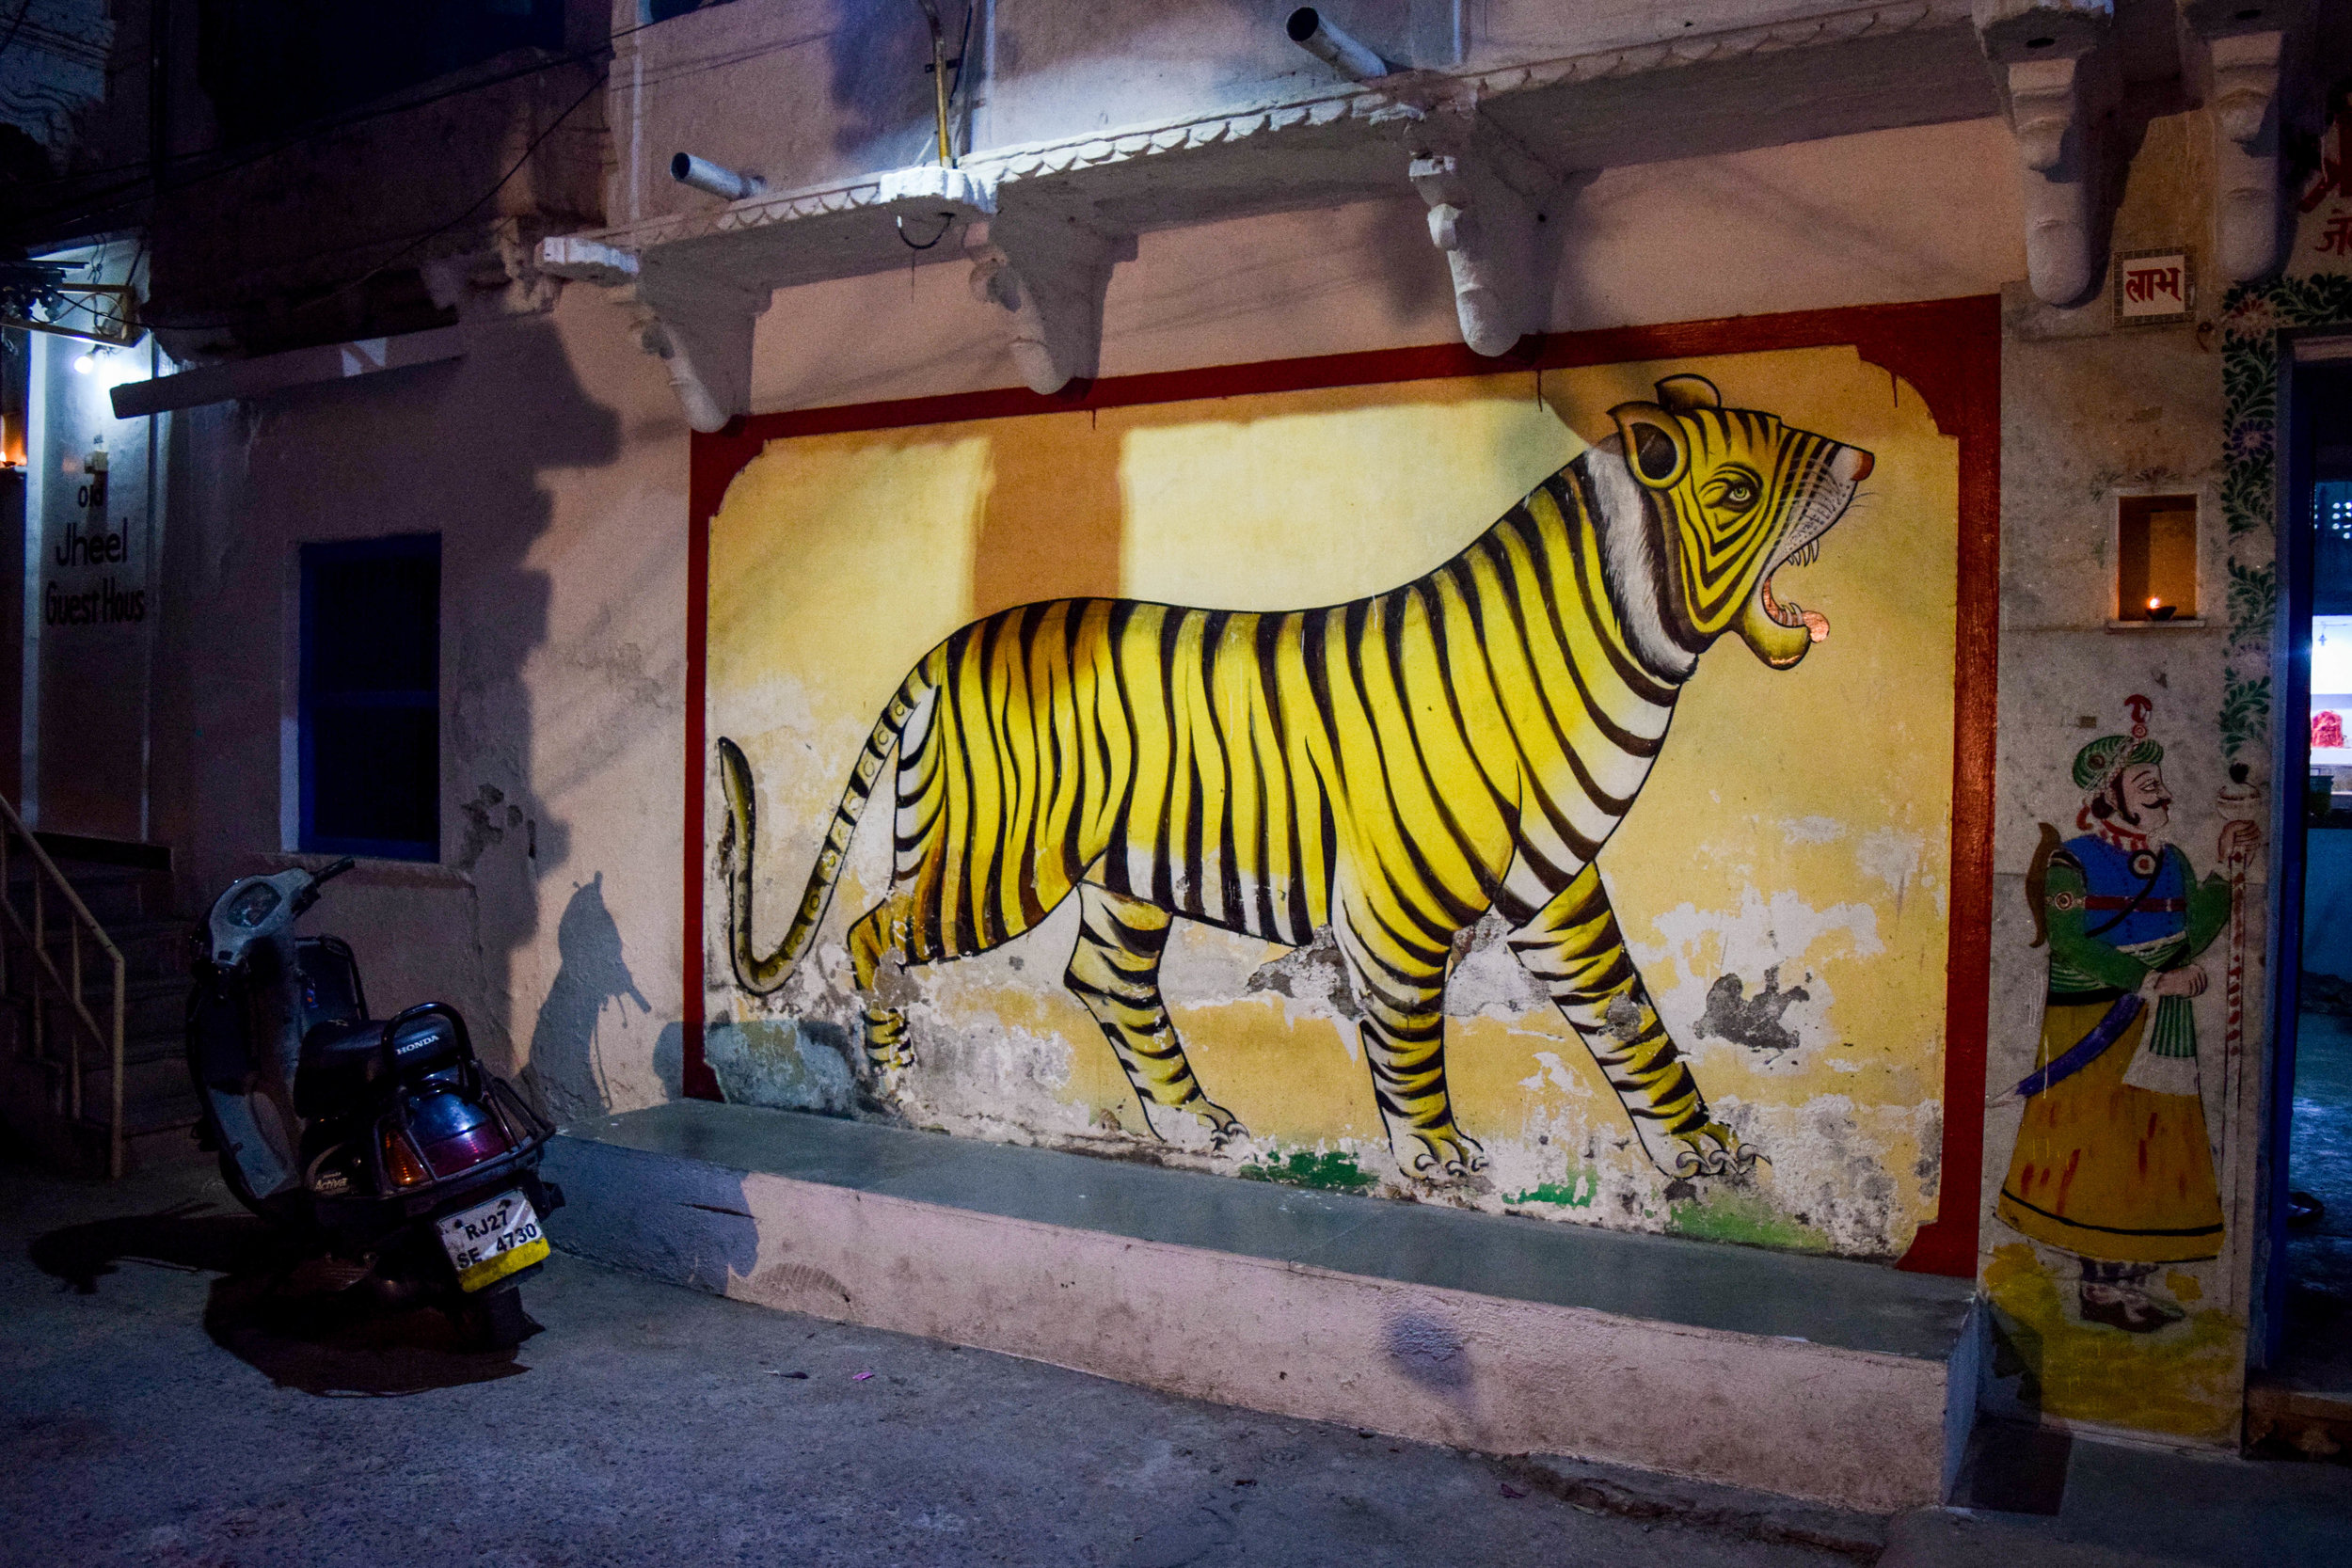 Rajasthan is full of gorgeous wall art like this.